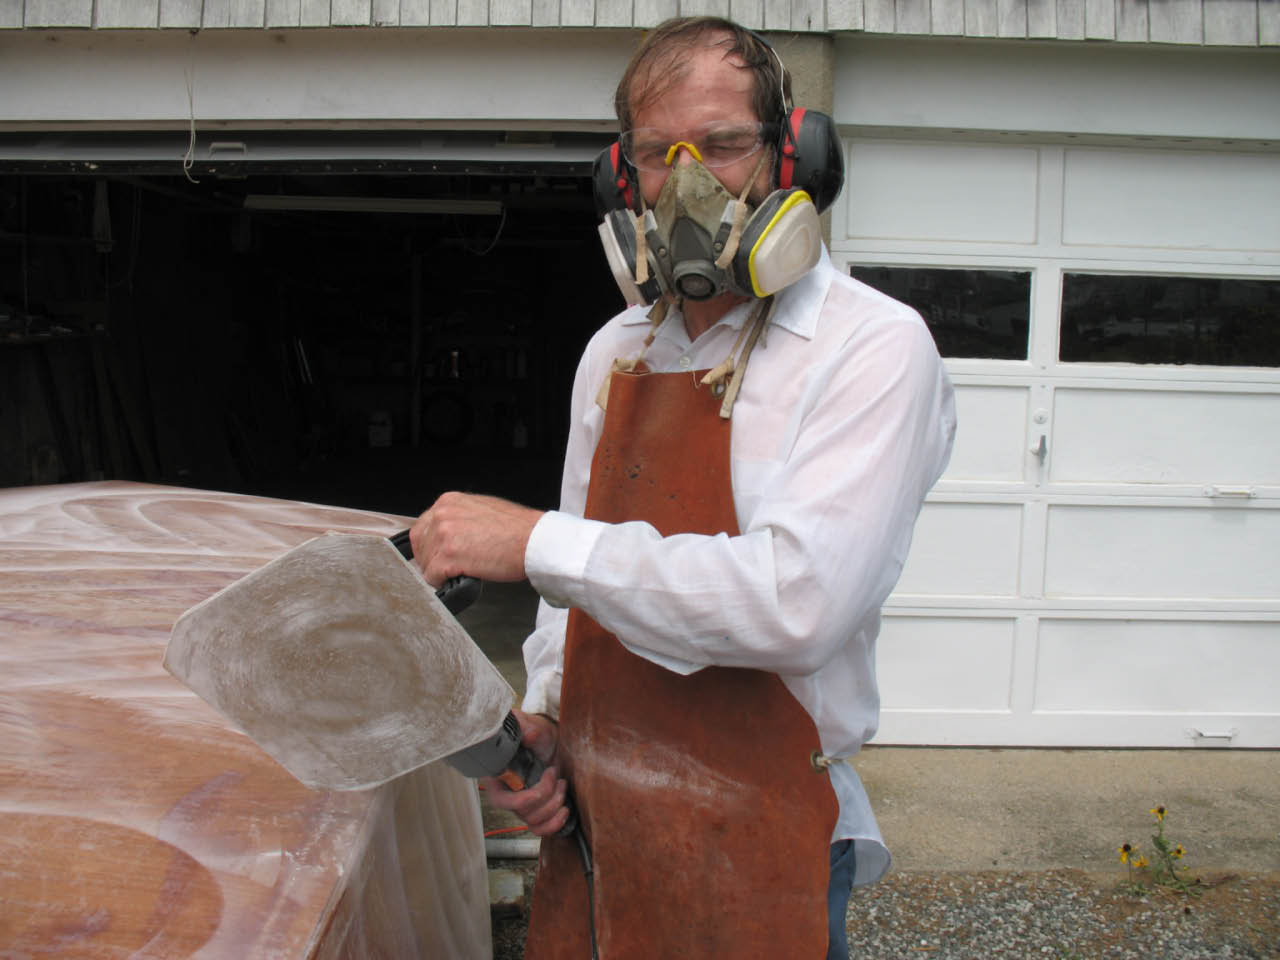 Sundogboatbuilding: Sanding and Painting the Hull